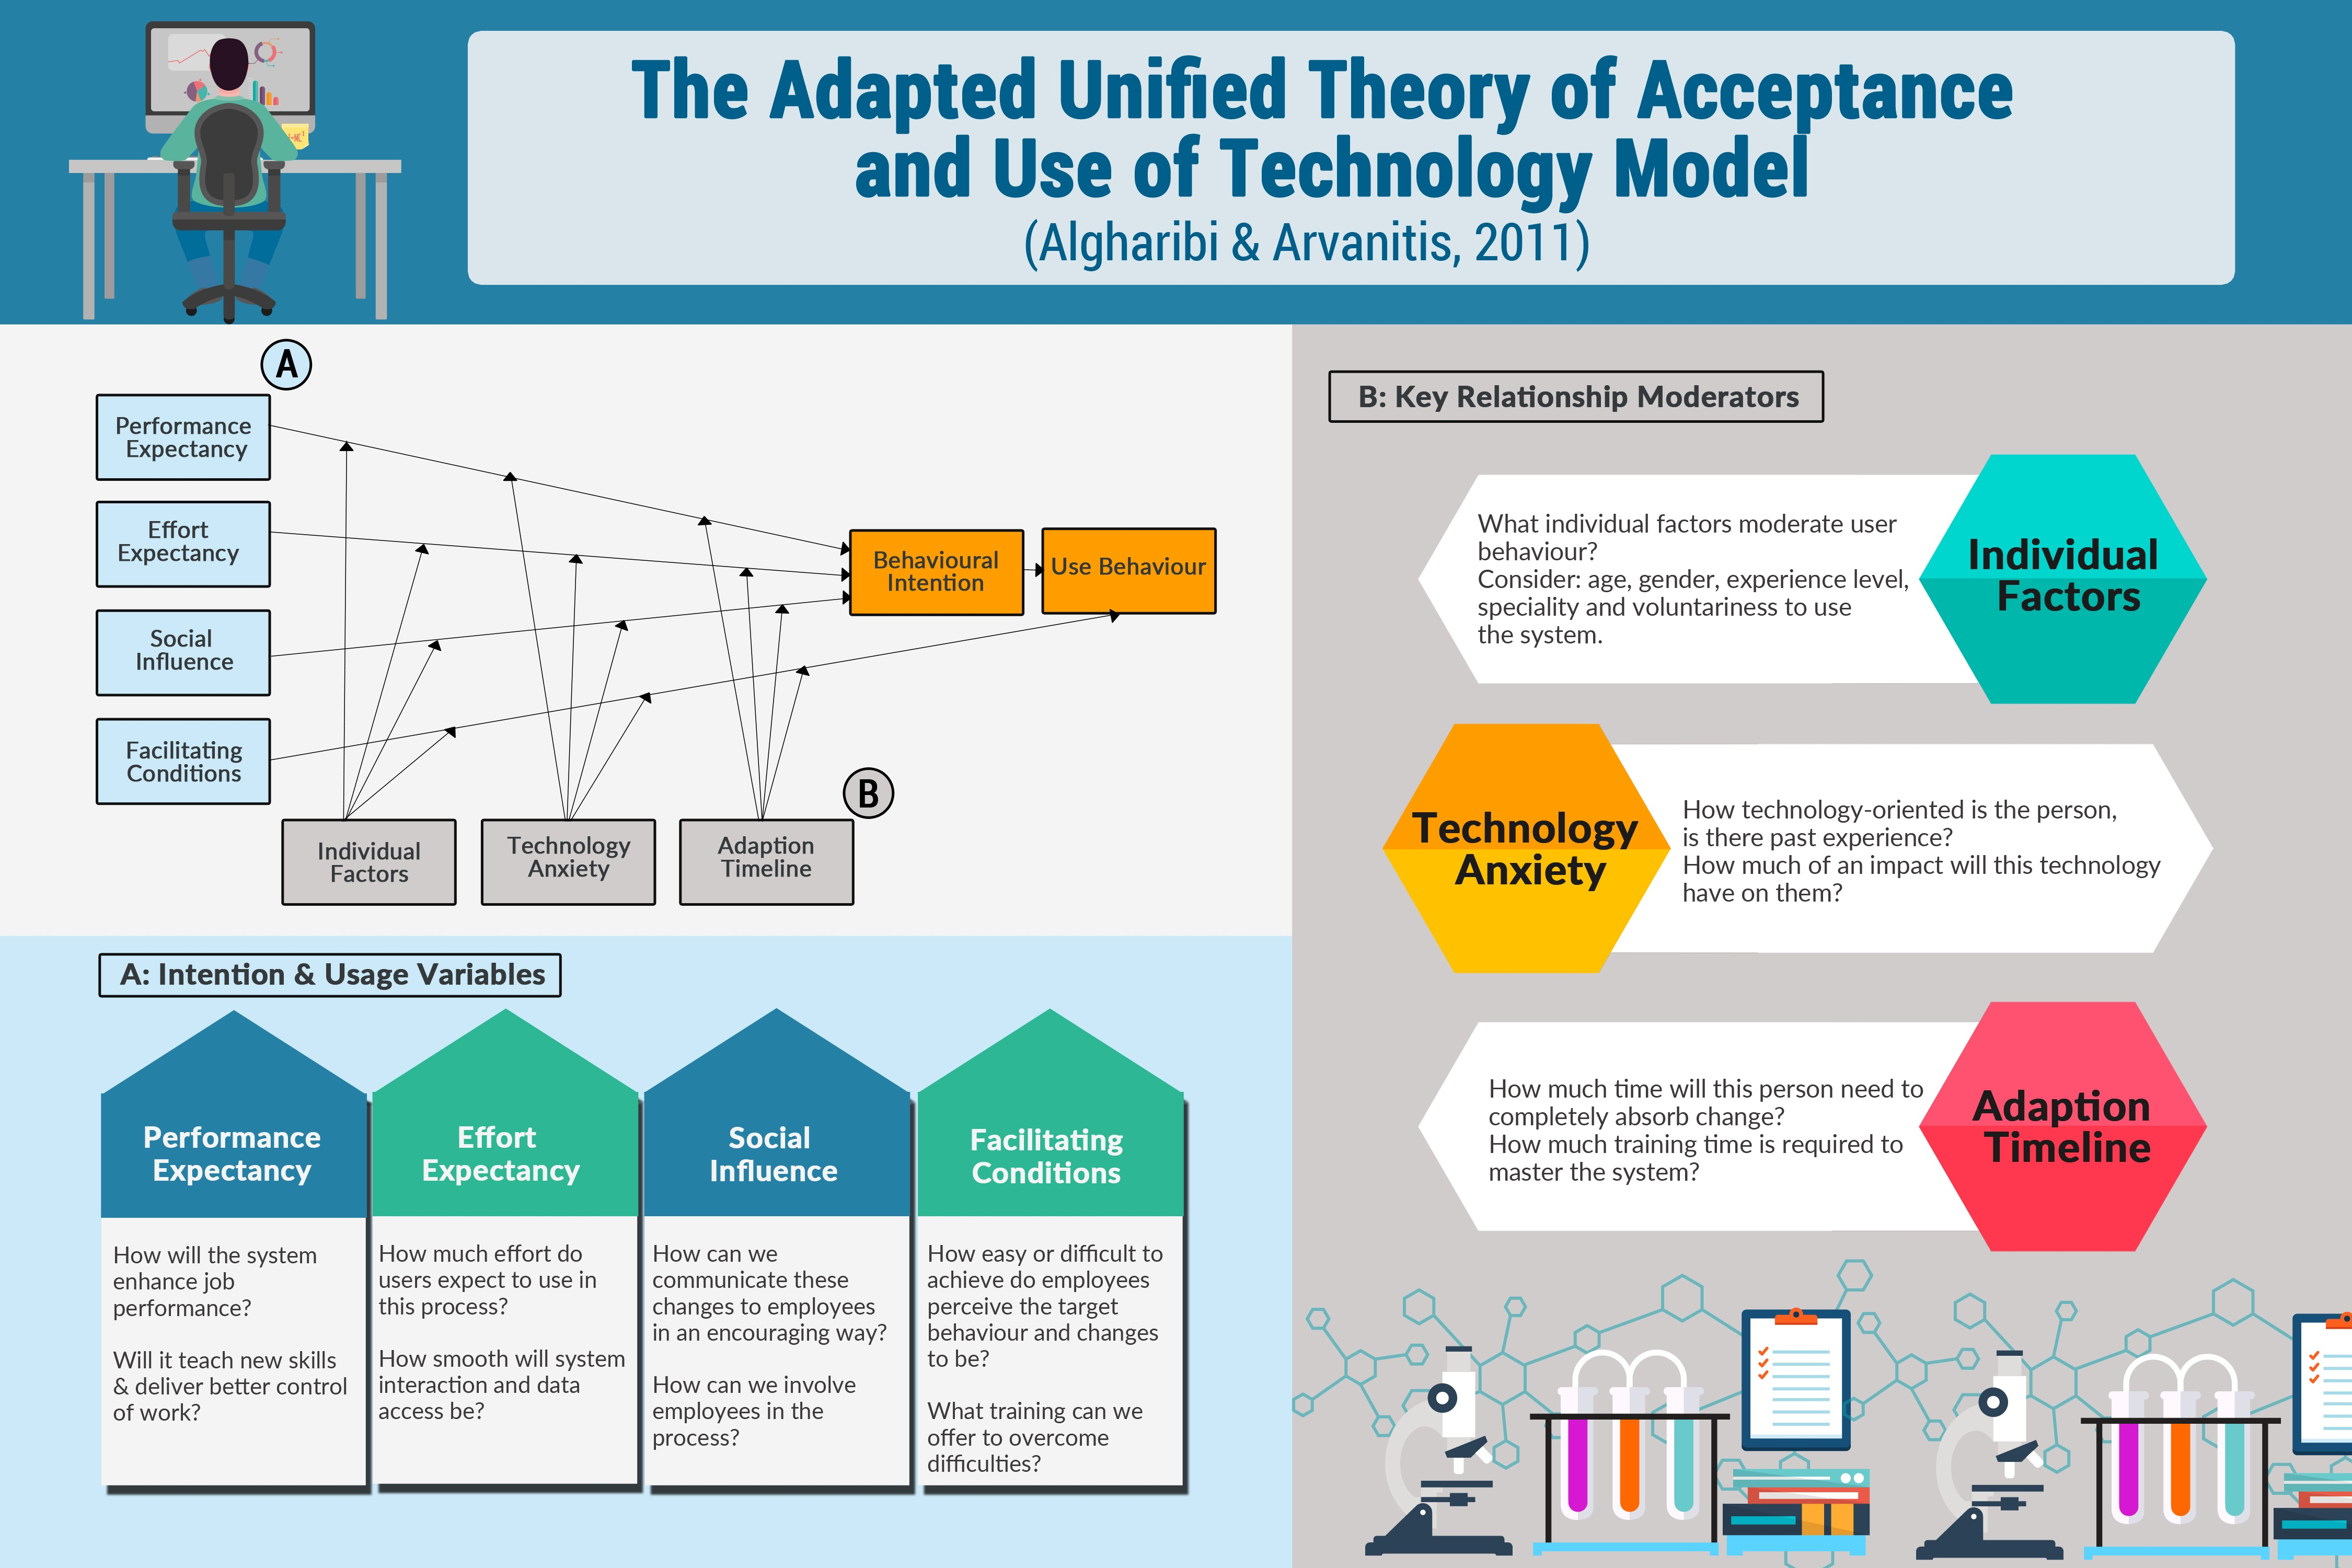 The Adapted Unified Theory of Acceptance and Use of Technology Model